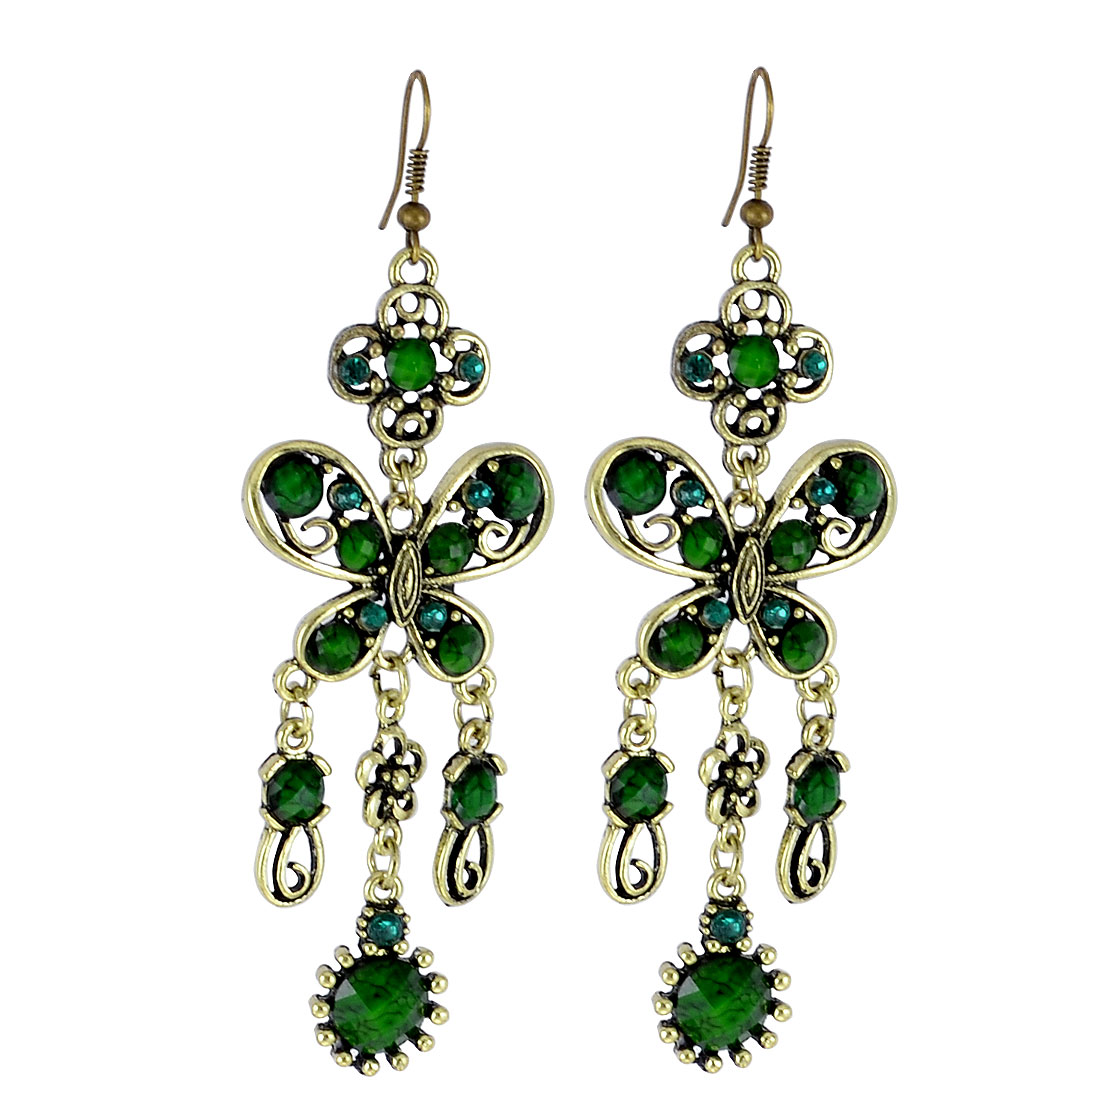 Green Plastic Beads Accent Butterfly Shaped Dangling Ear Hook Earrings Pair